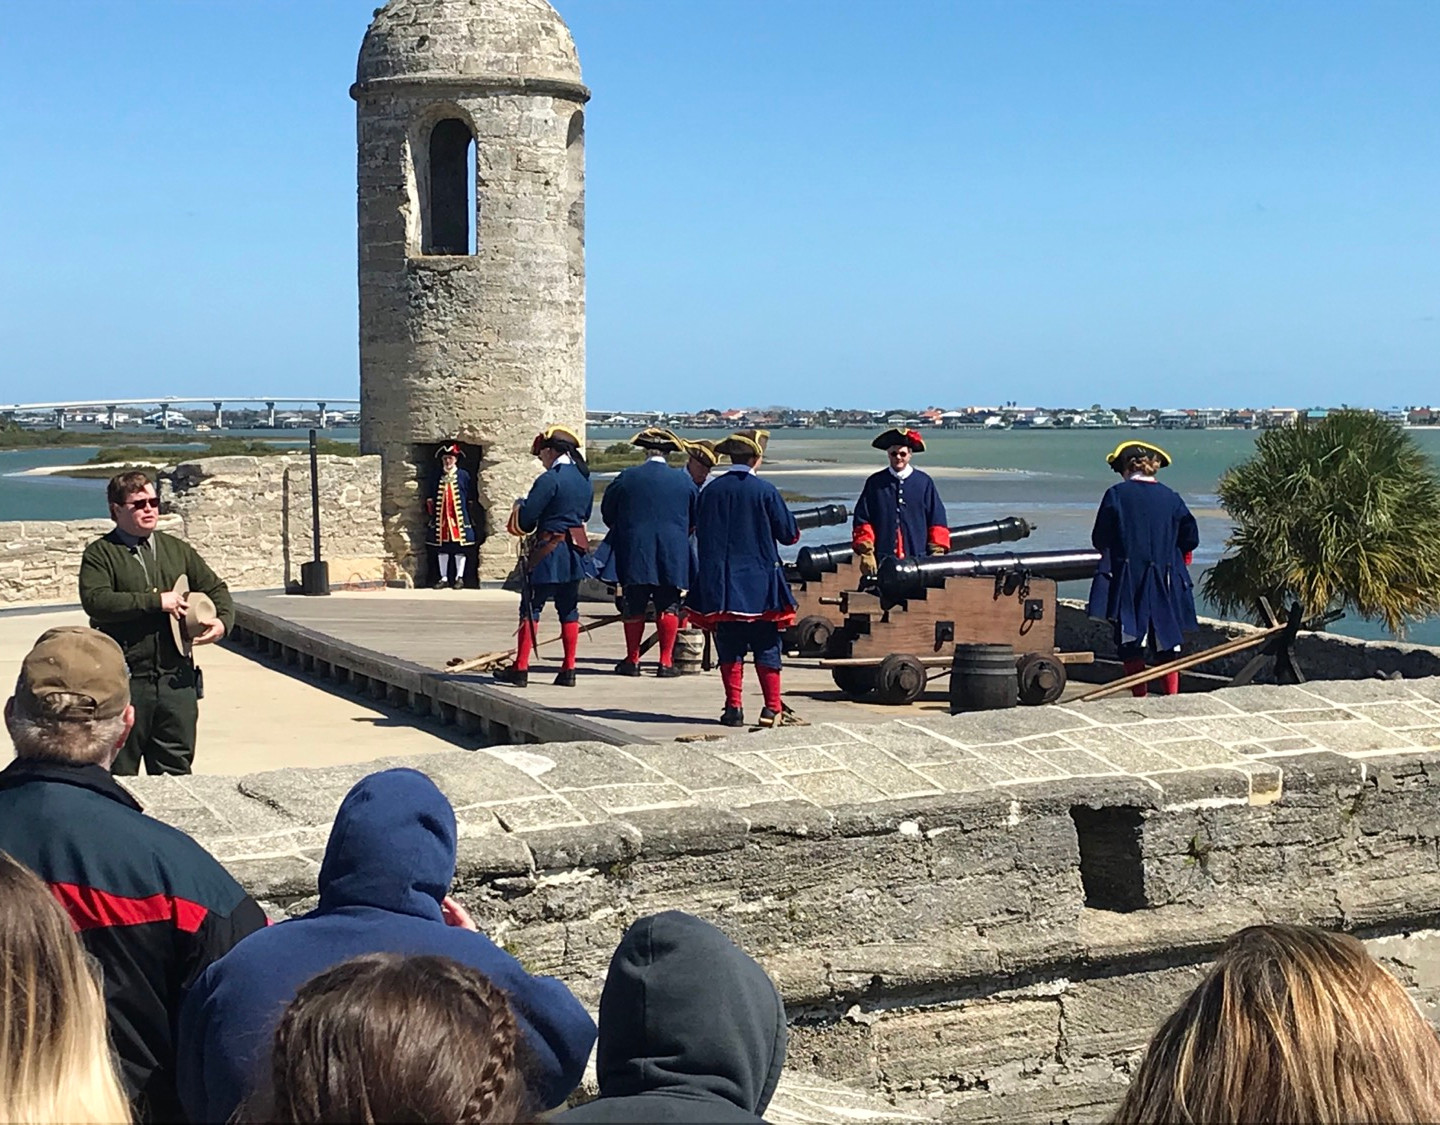 Cannon demonstration in Spanish attire and language